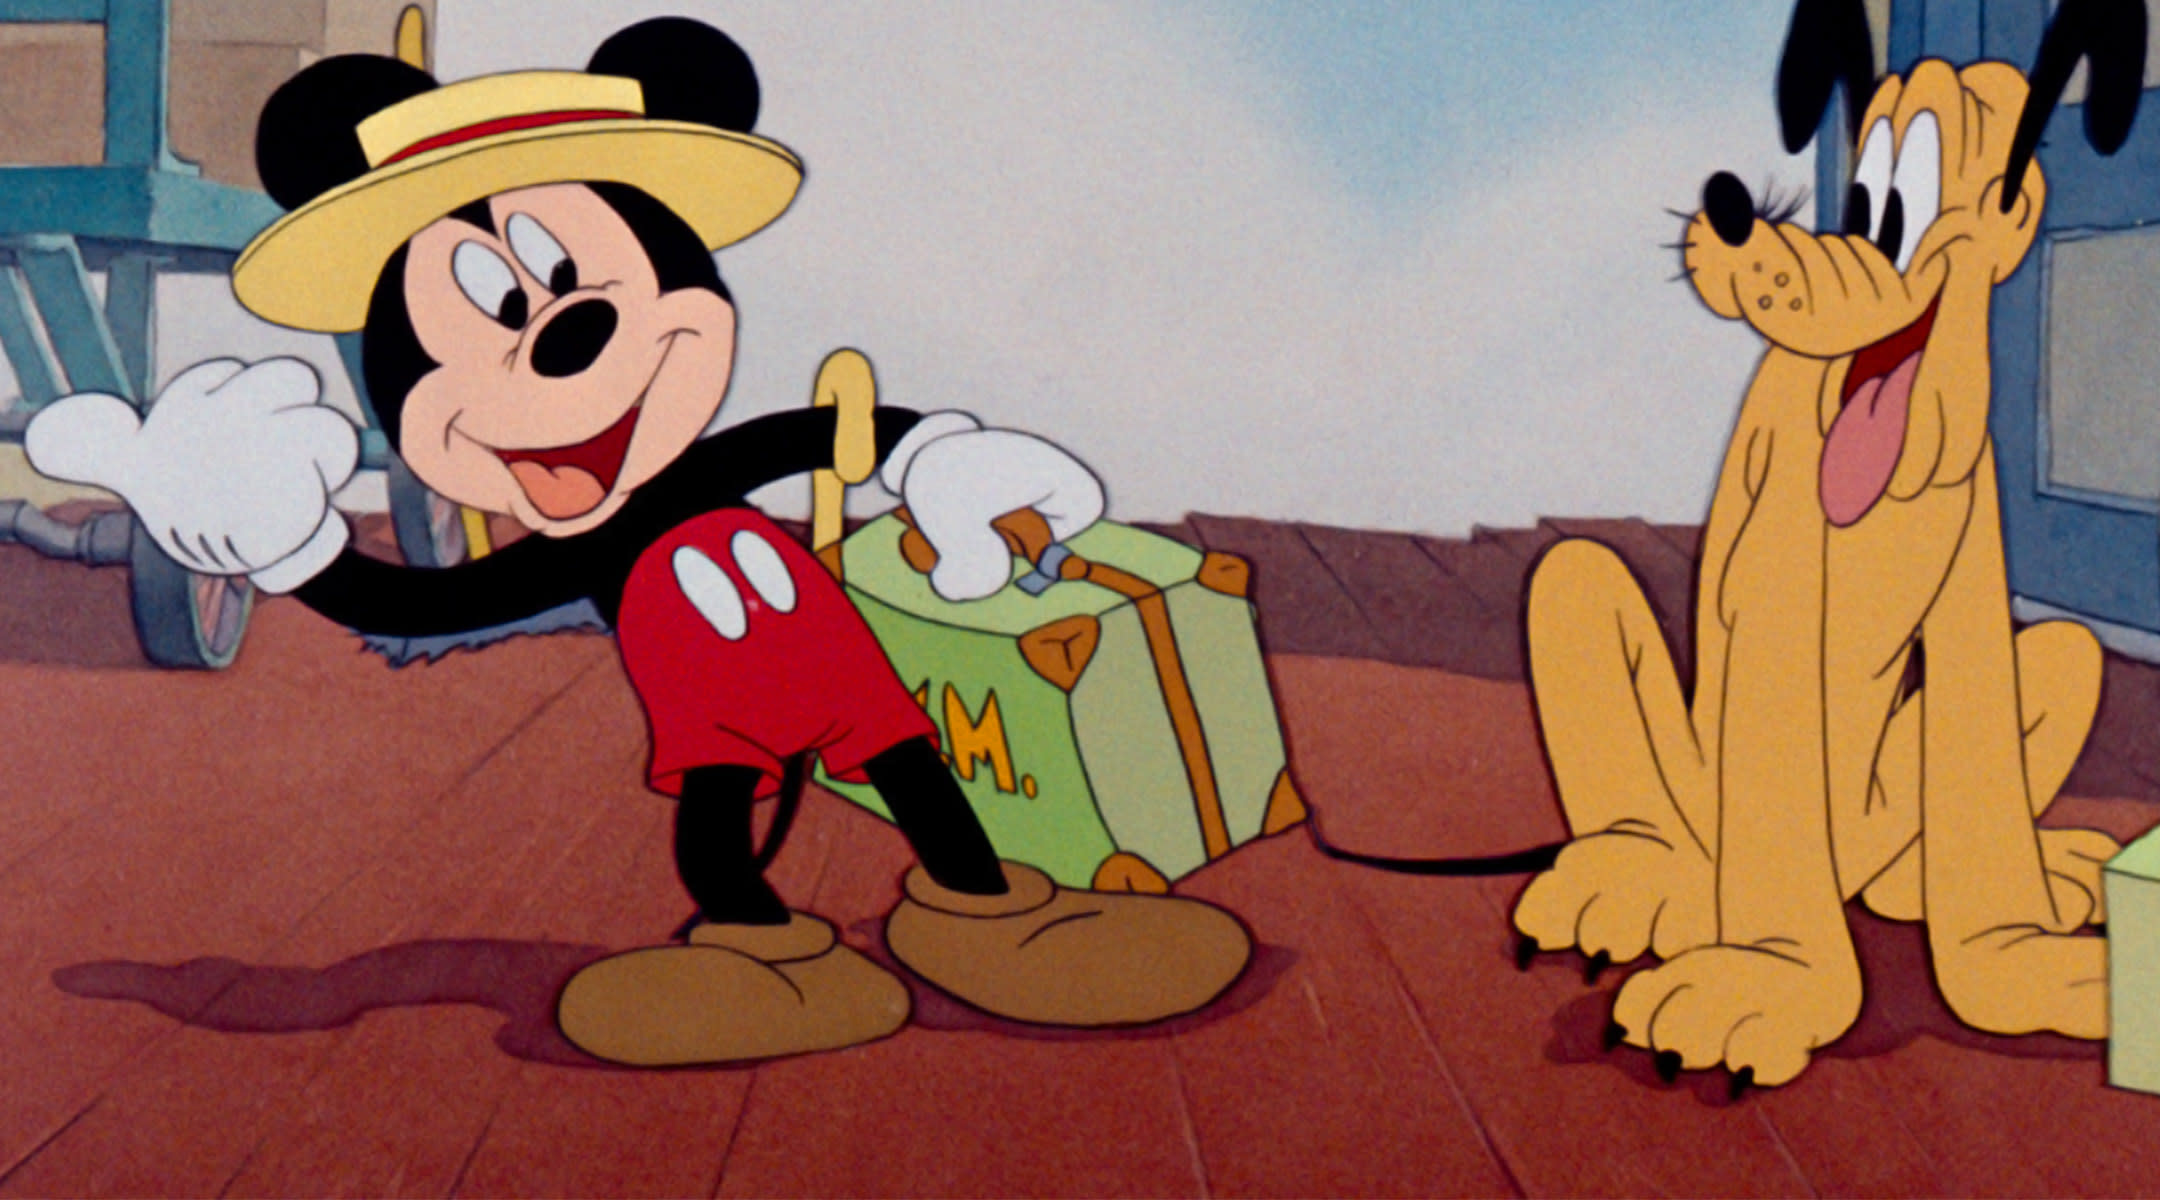 cartoon mickey mouse and pluto getting ready for a trip